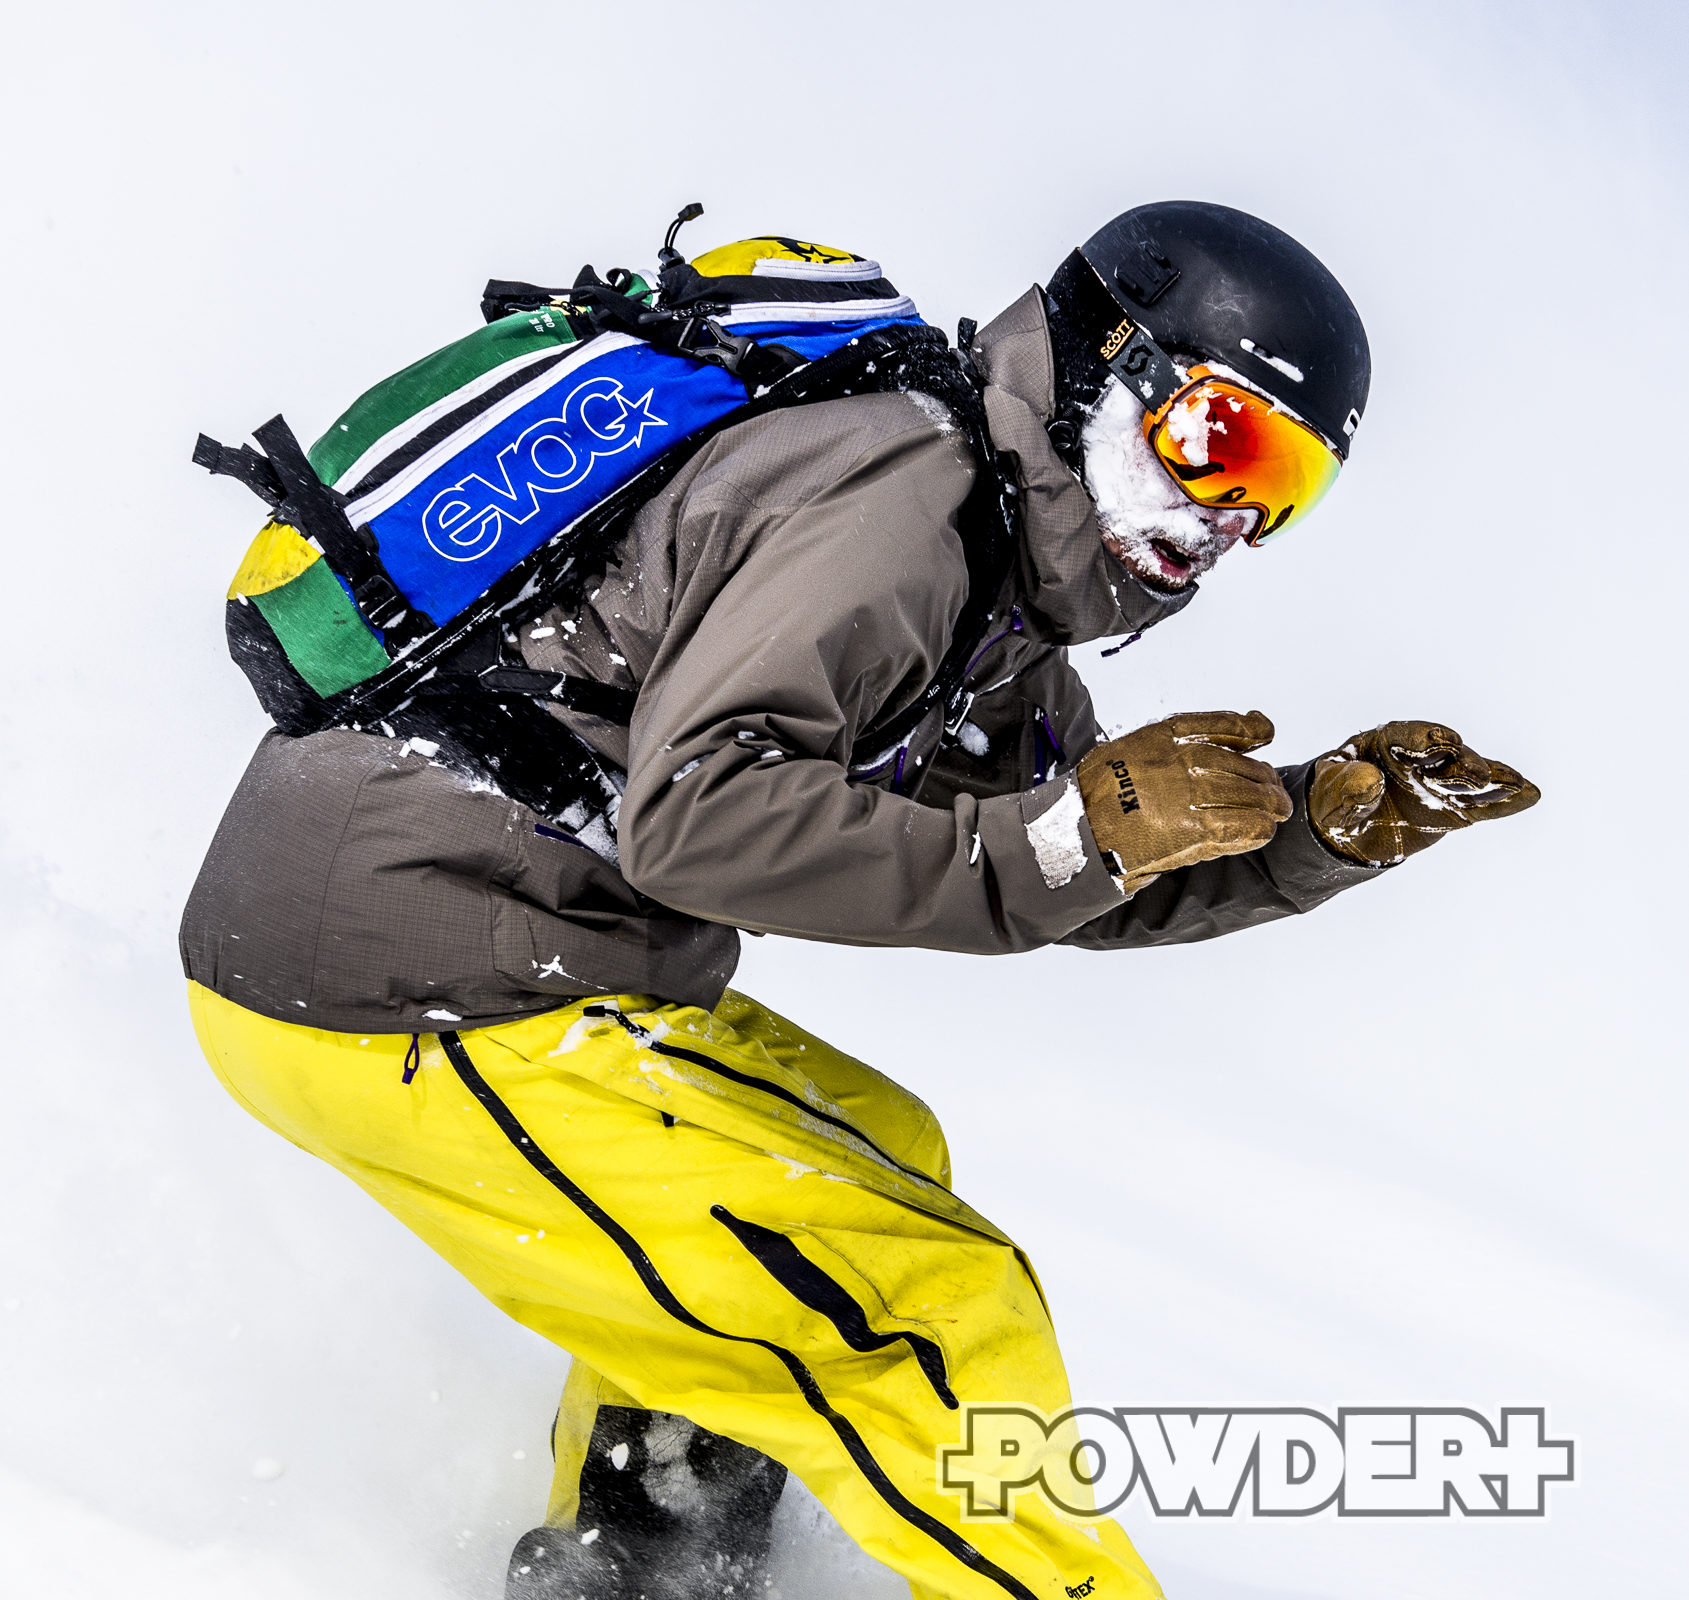 Kinco Ski Glove, Kinco, Freeridehandschuh, Silvretta Montafon, Powder, Freeride, Montafon, Hochjoch, Schruns, Snowboard, Novatal, POwder, Powderplus, Powder plus